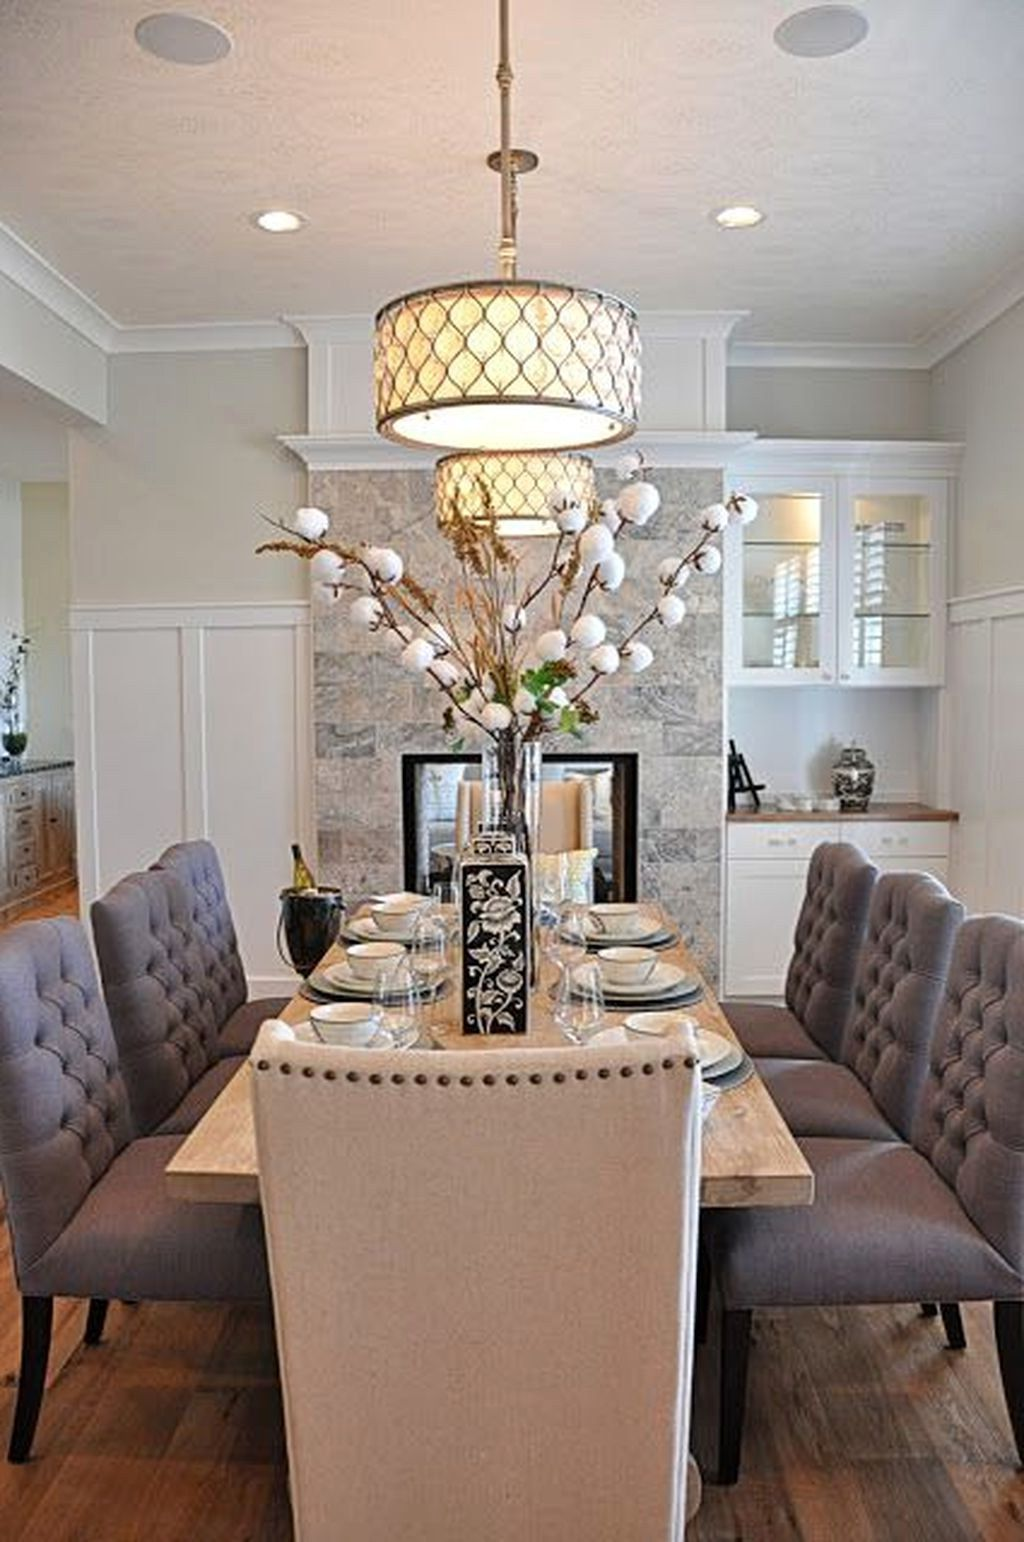 33 Amazing Dining Rooms Decoration Ideas 06 Best Home Design Ideas Dining Room Decor Elegant Dining Room Beautiful Dining Rooms